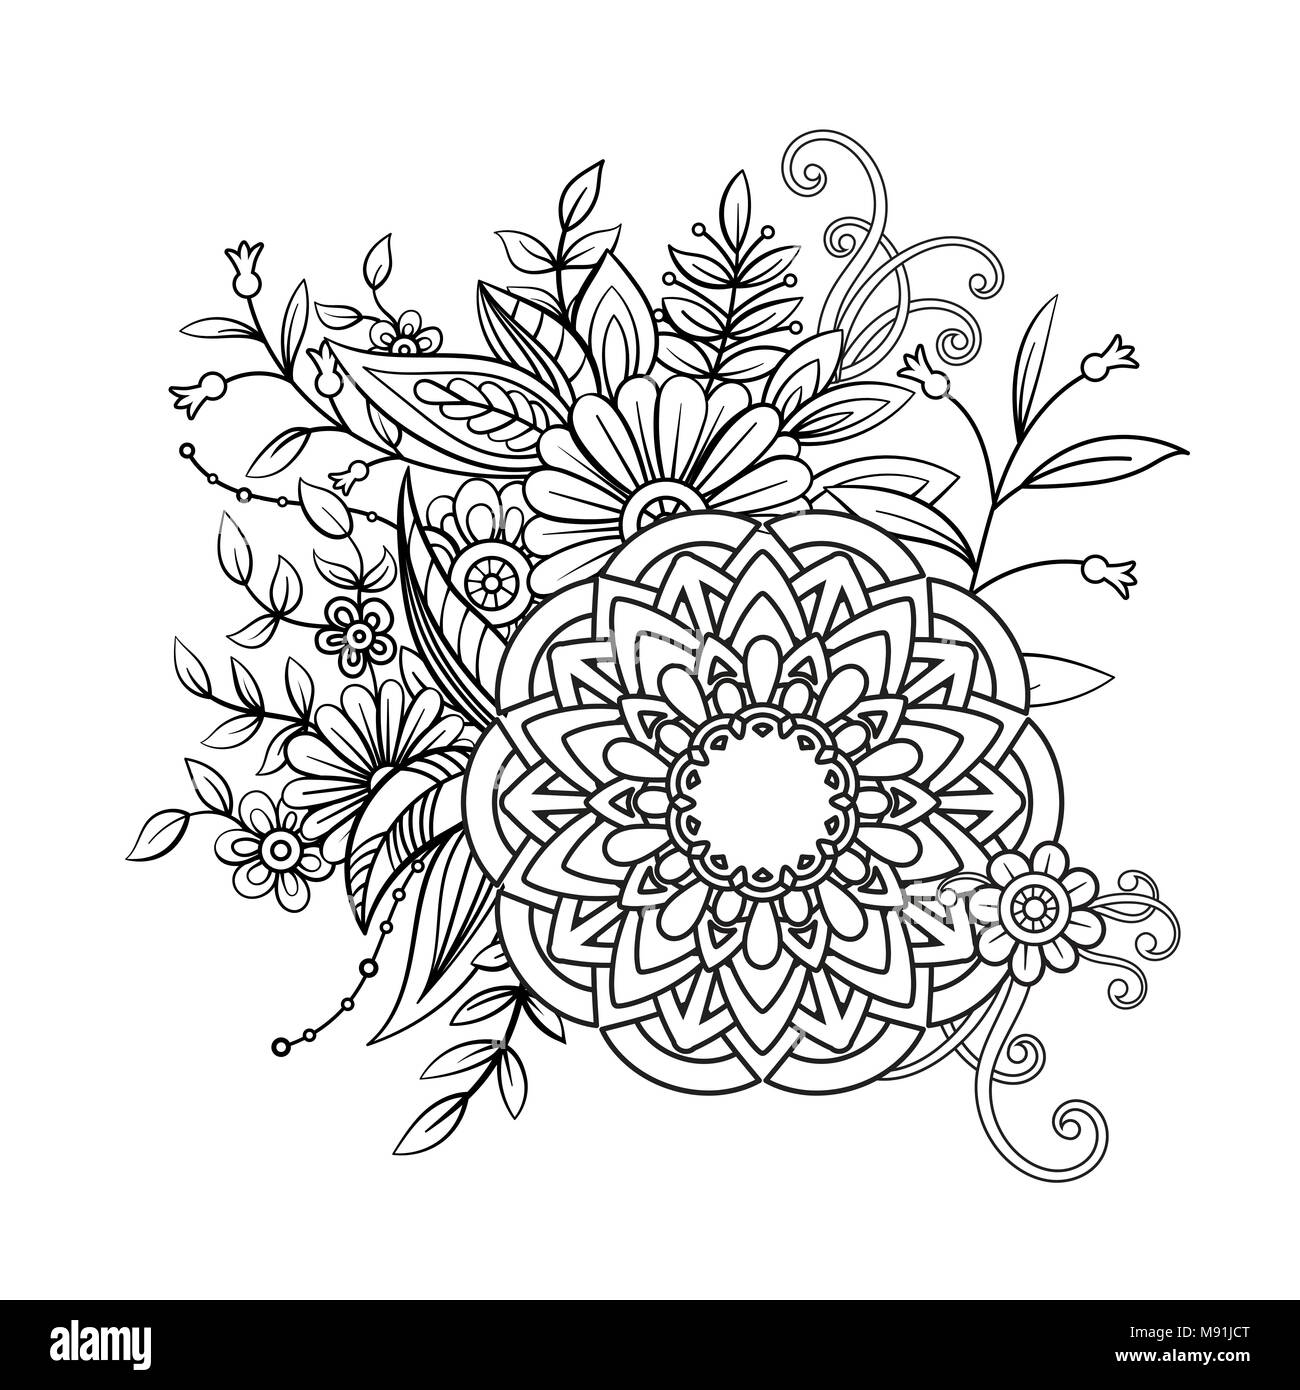 Floral mandala pattern in black and white. Adult coloring book page ...